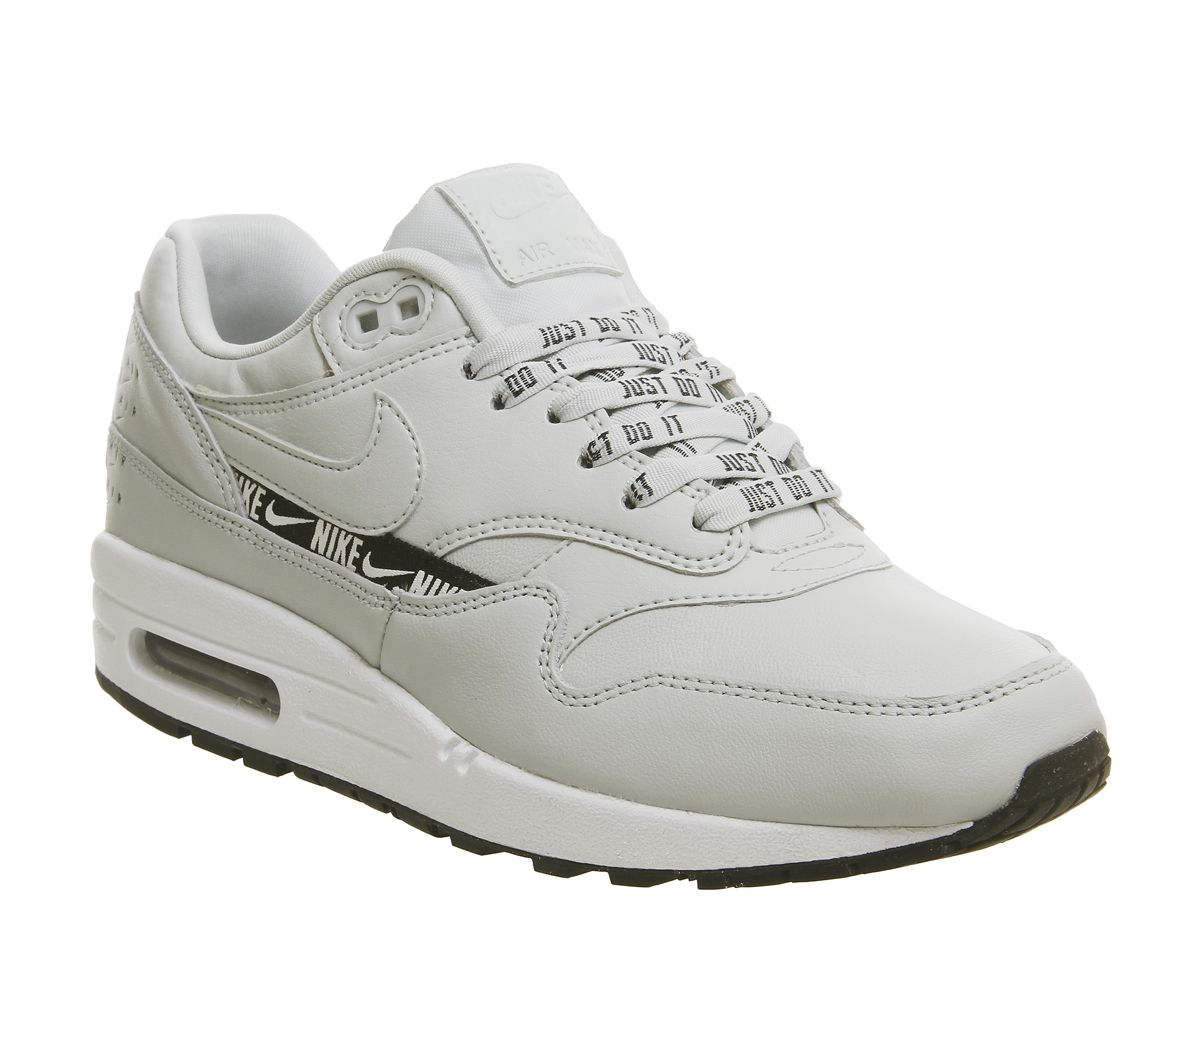 762b280653b0 Nike Air Max 1 Trainers Light Silver Black White - Hers trainers